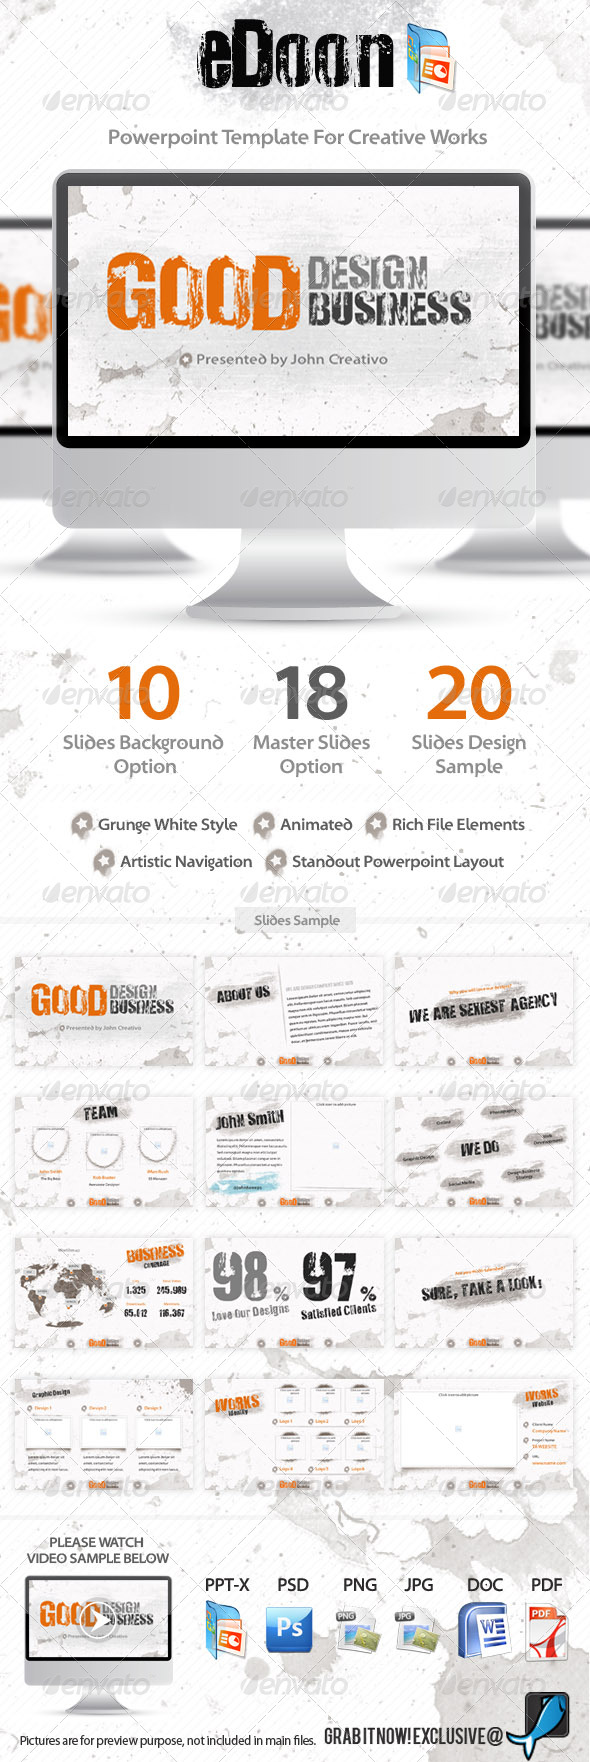 GraphicRiver eDoon Powerpoint Template For Creative Works 241895